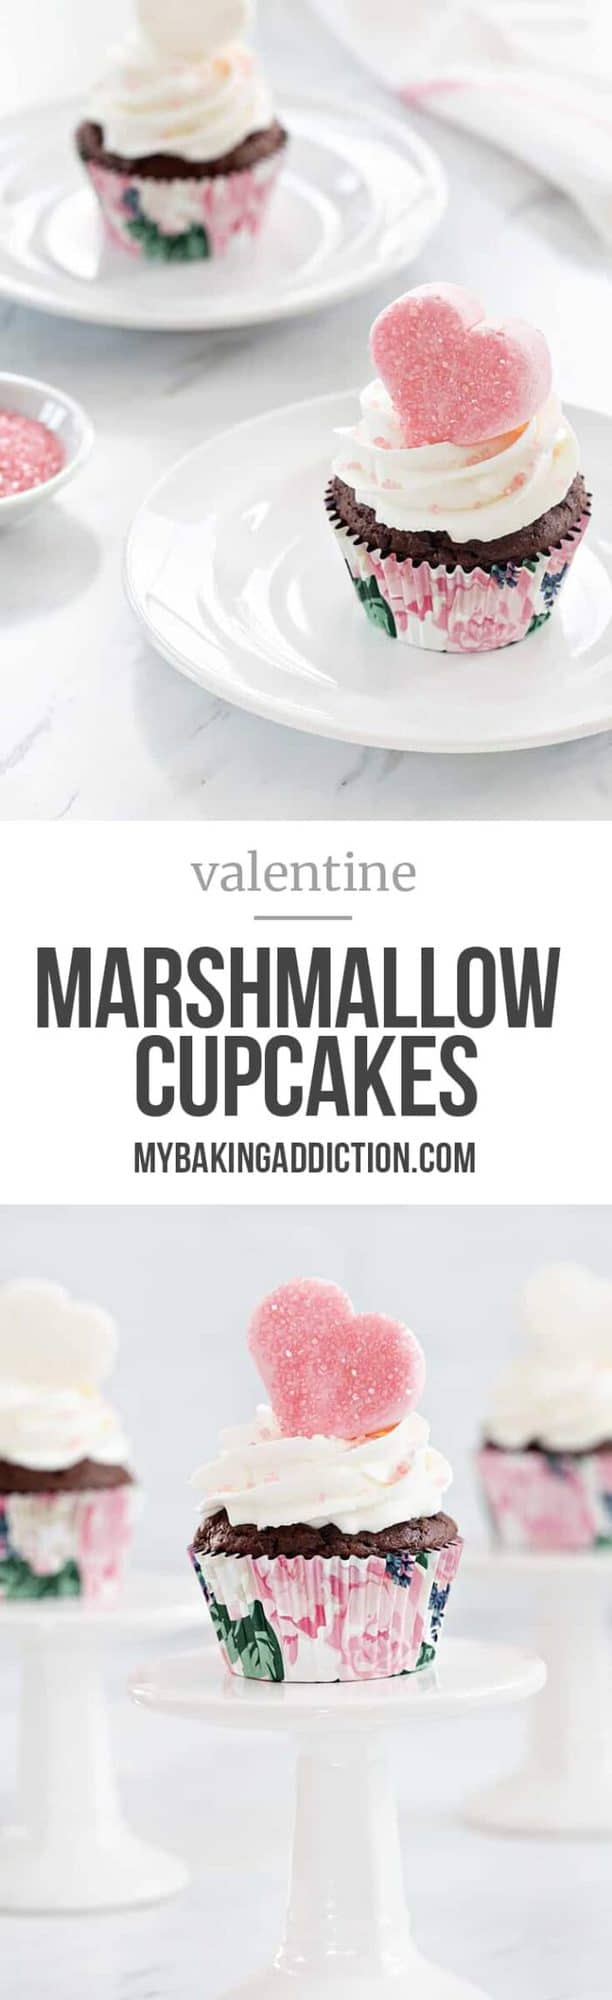 Valentine Marshmallow Cupcakes are a simple and delicious dessert for Valentine's Day. Sparkly marshmallow hearts makes them love-ly!